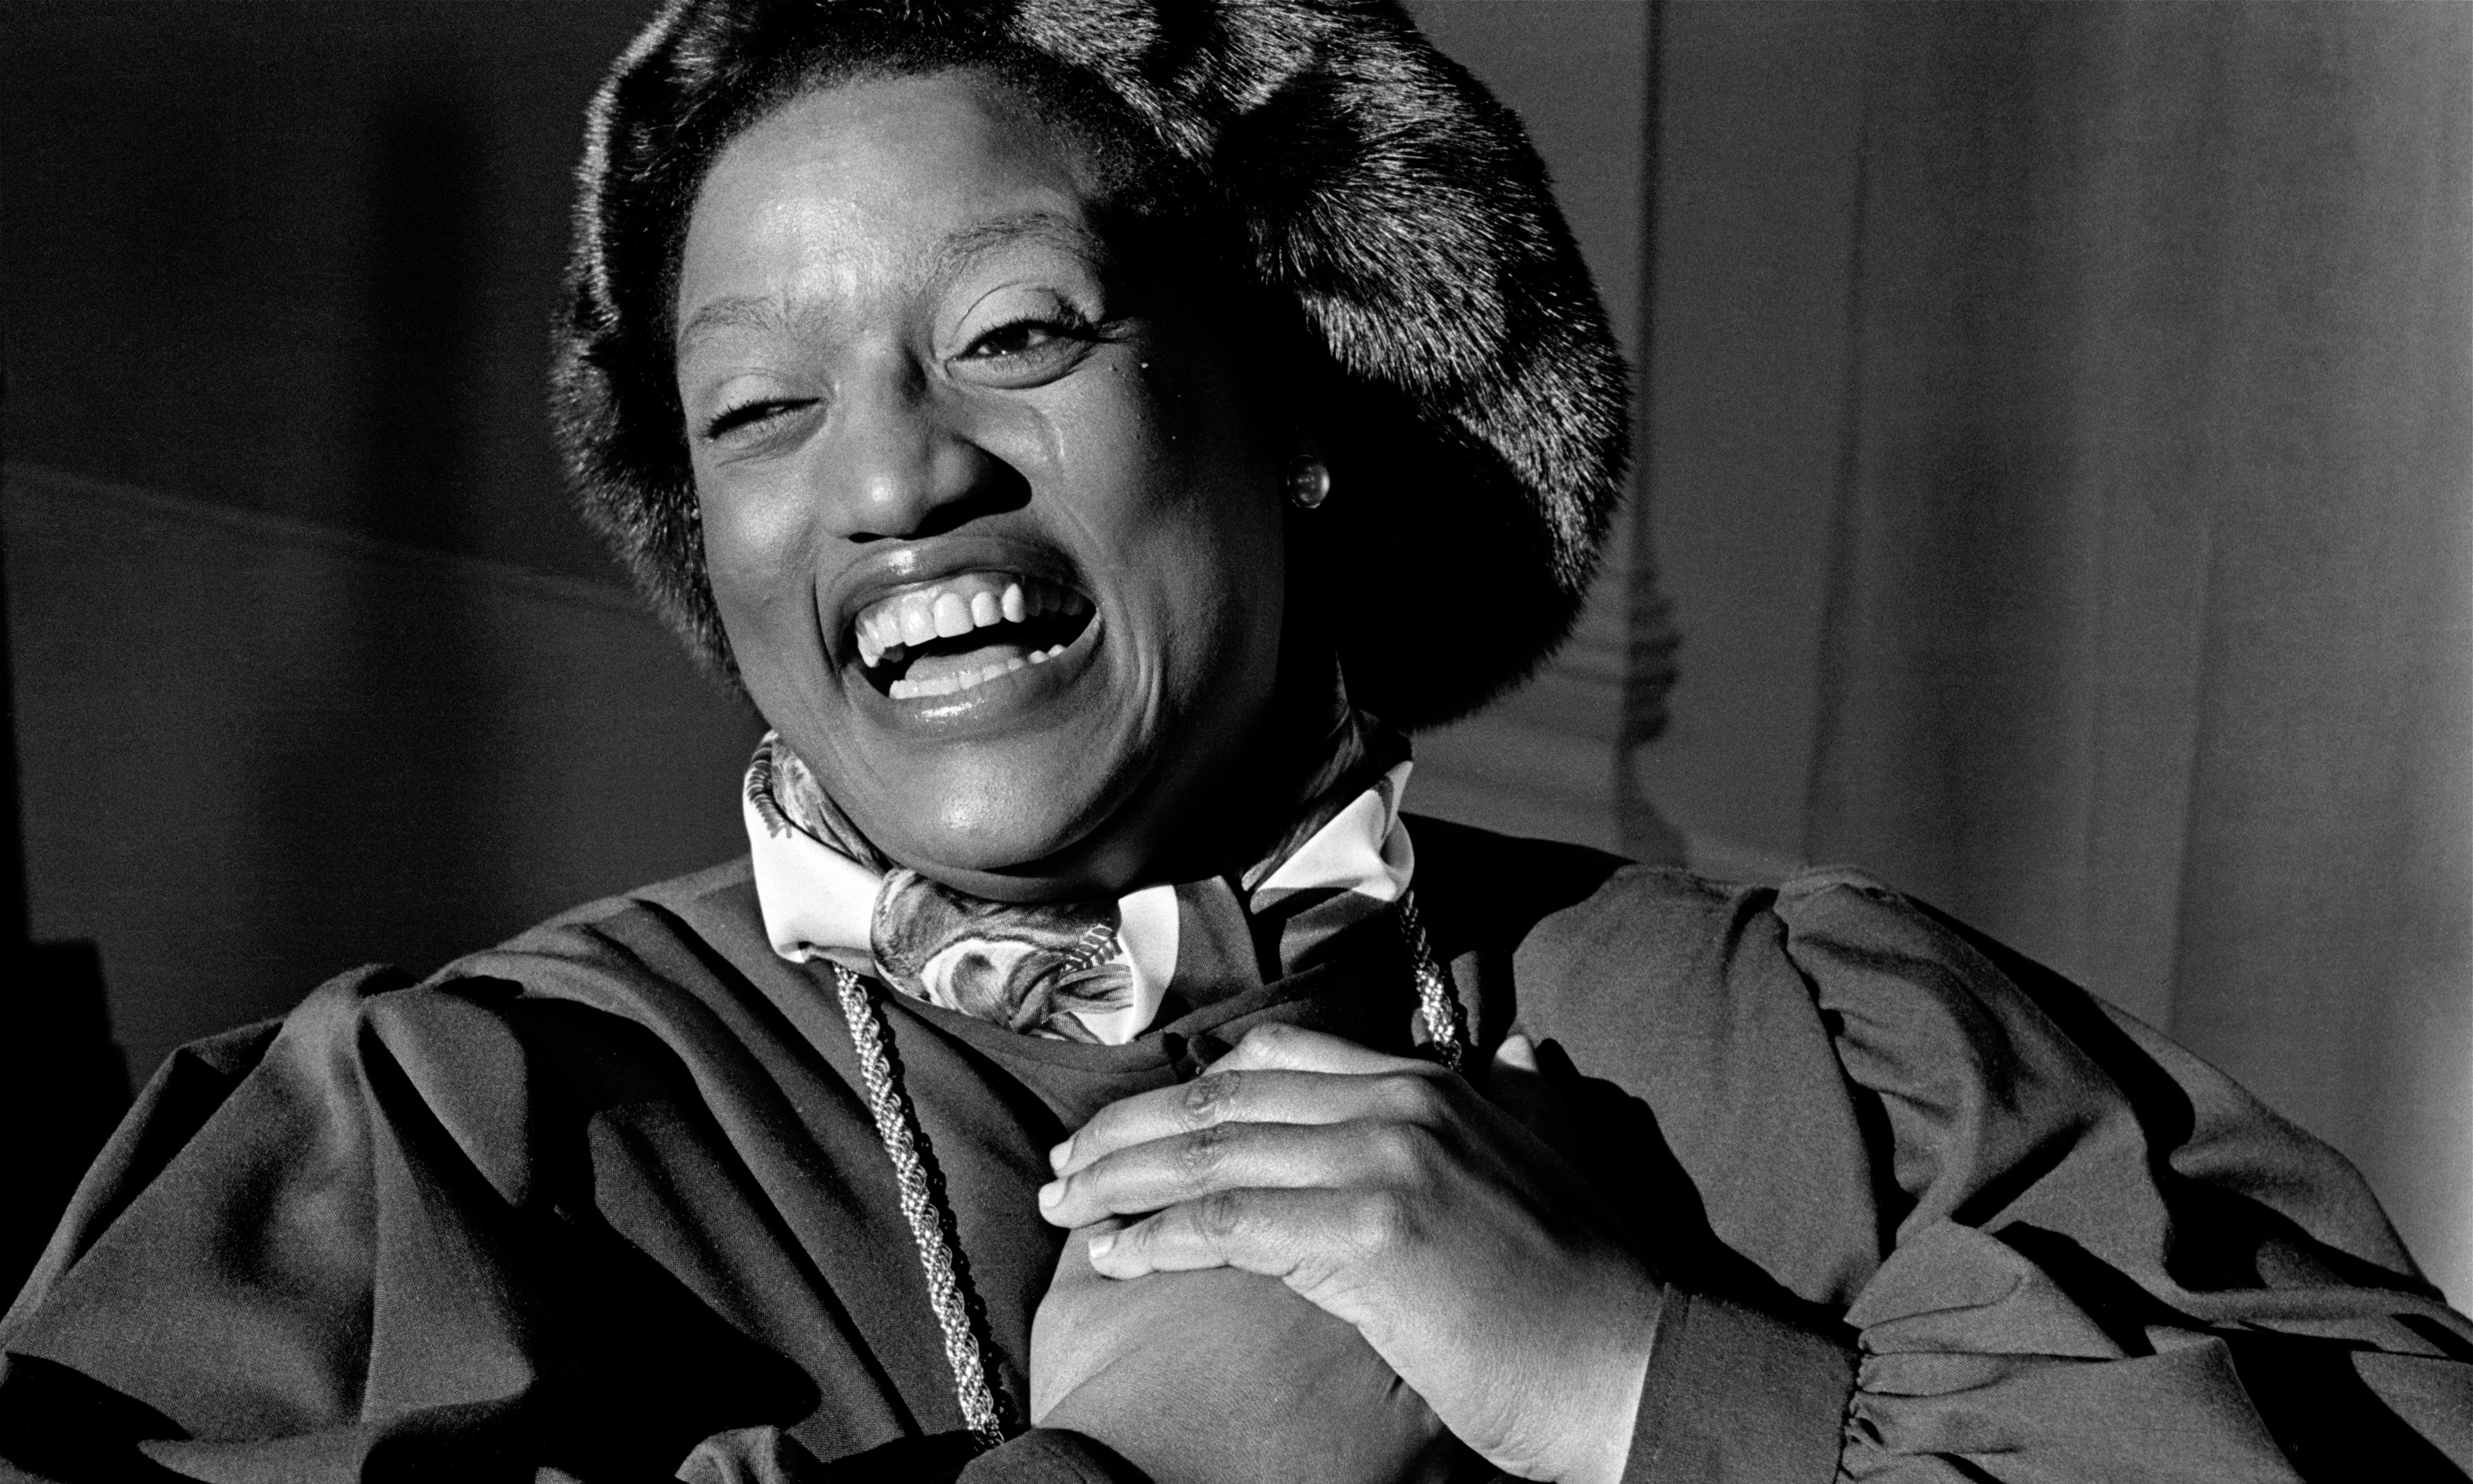 Jessye Norman's magnificent voice smashed racial barriers